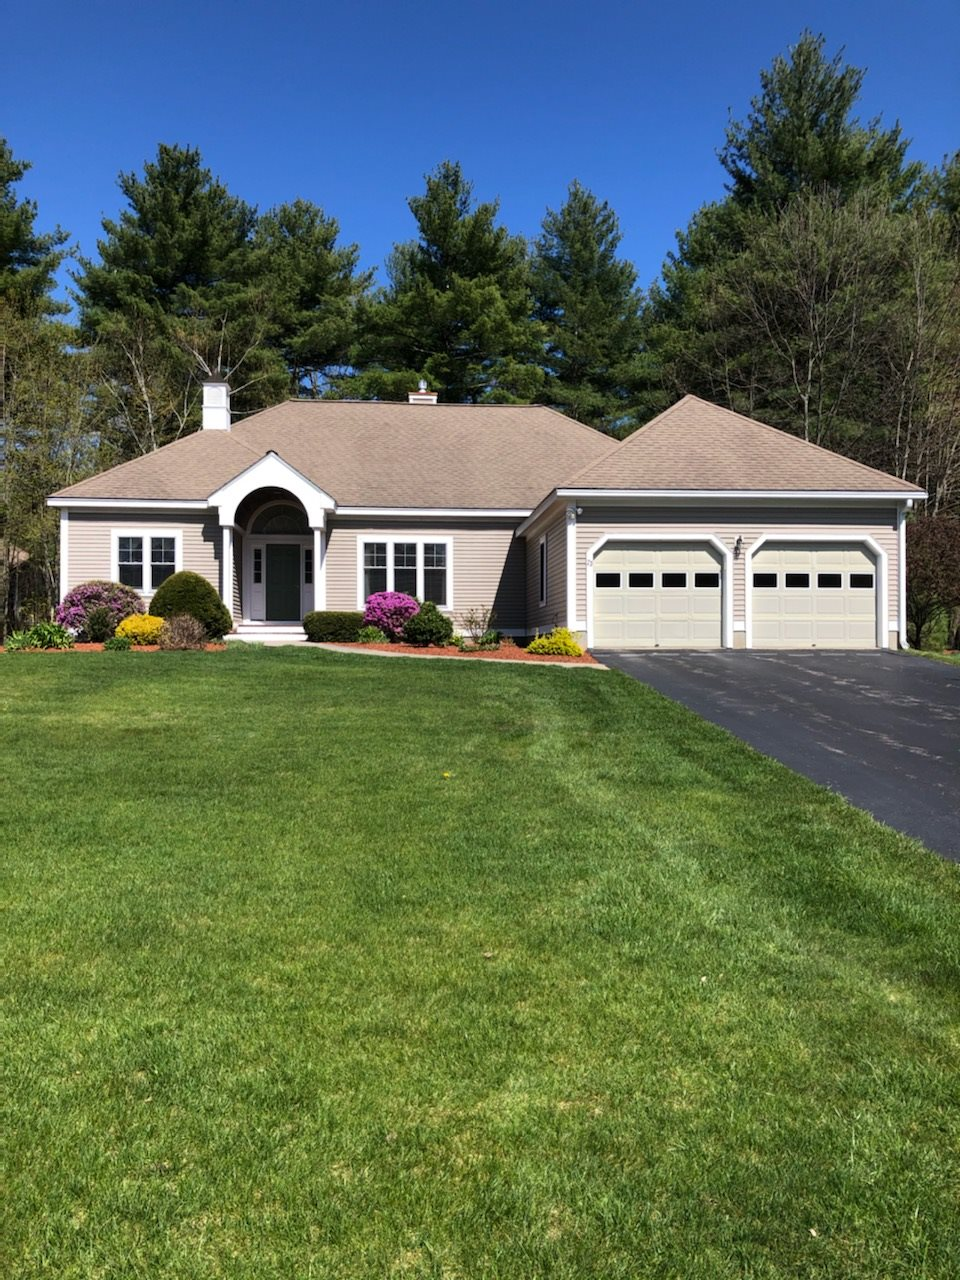 MLS 4789280: 23 SandPiper Lane, Merrimack NH